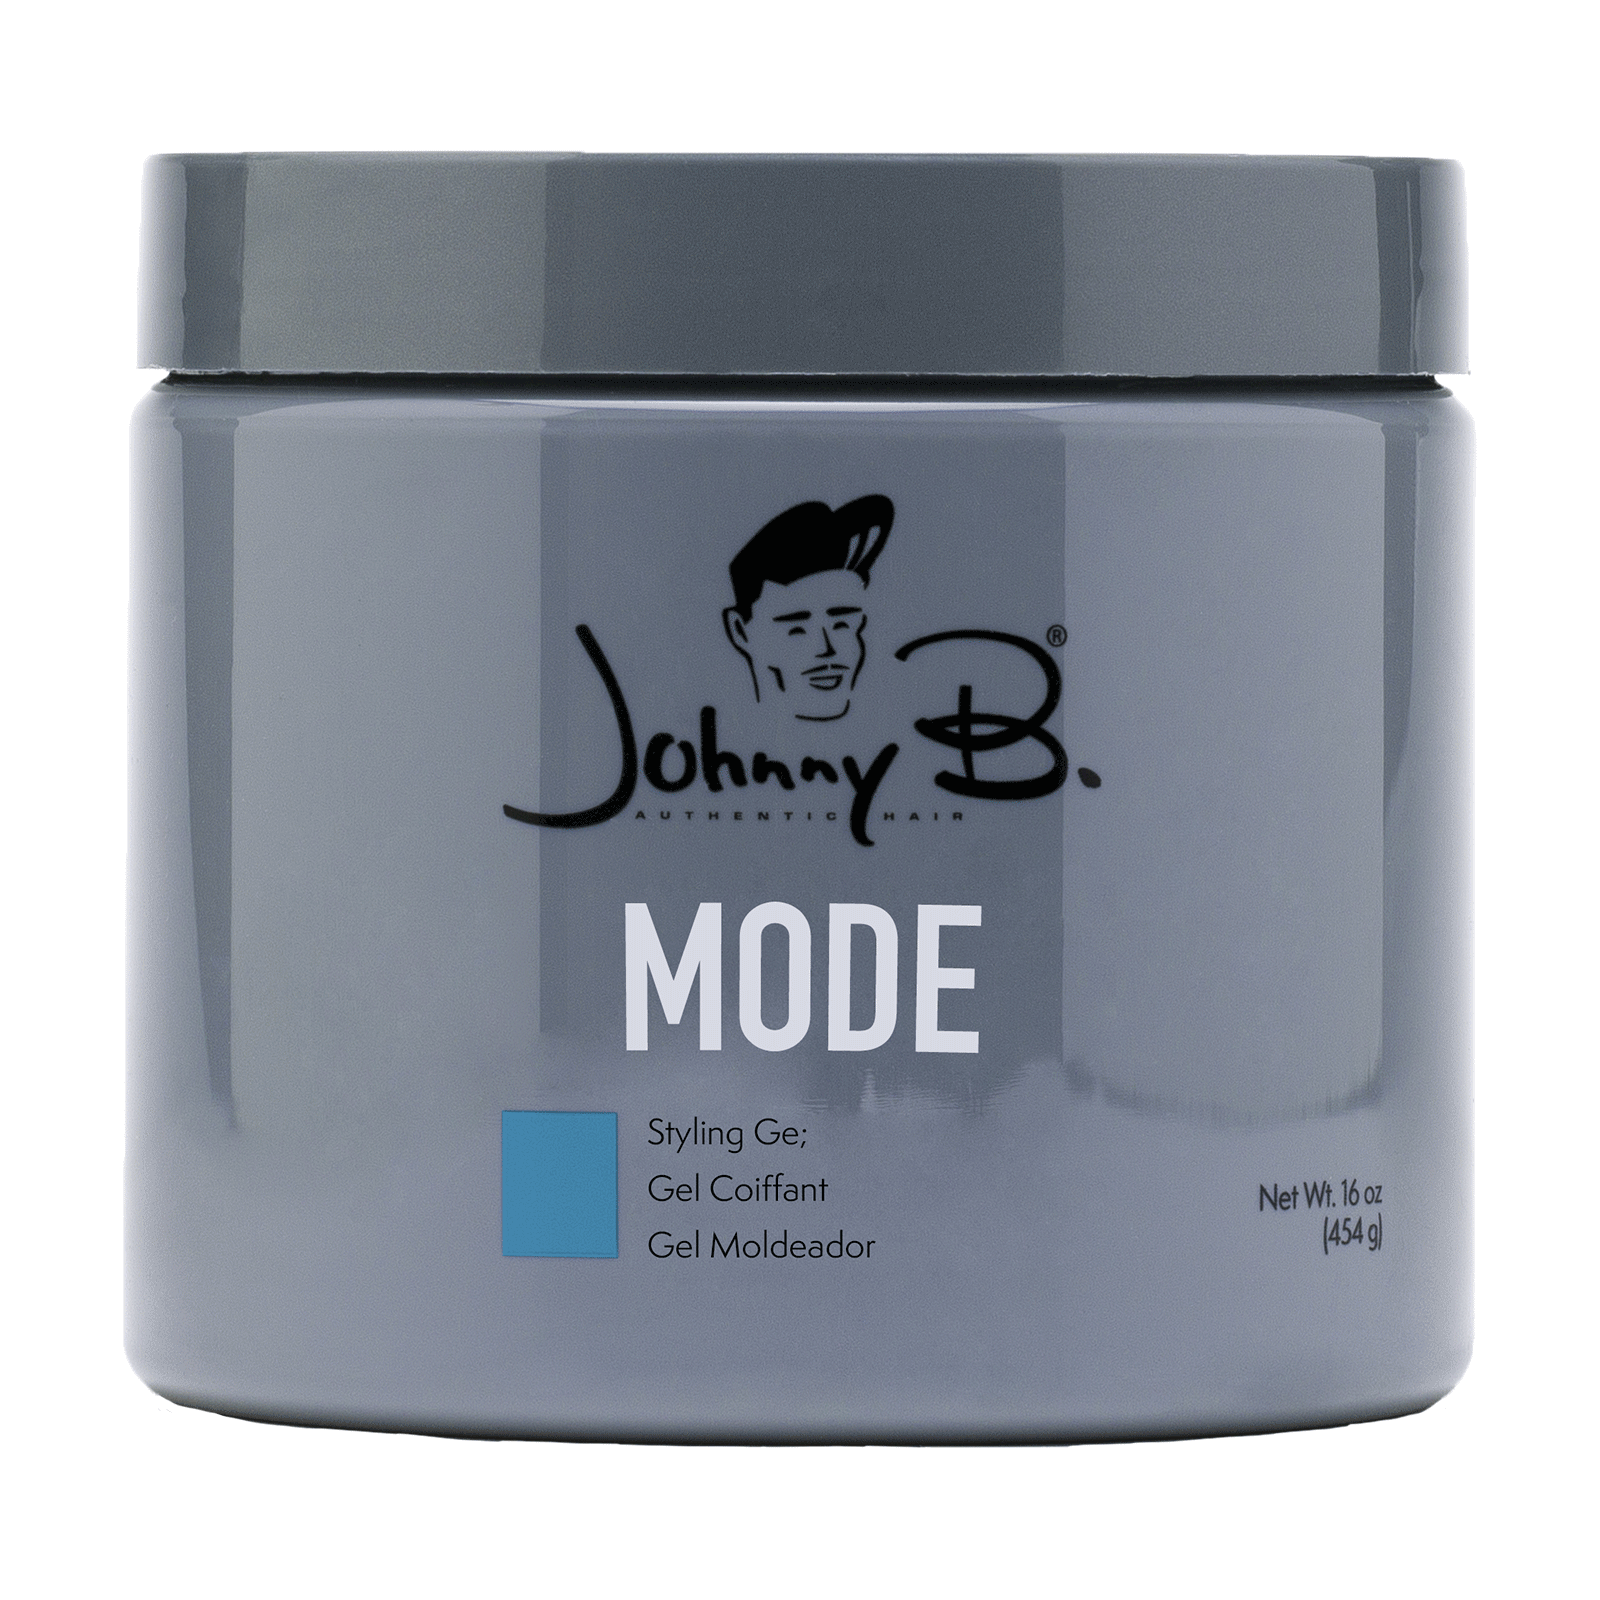 Mode Styling Gel With Pump Johnny B